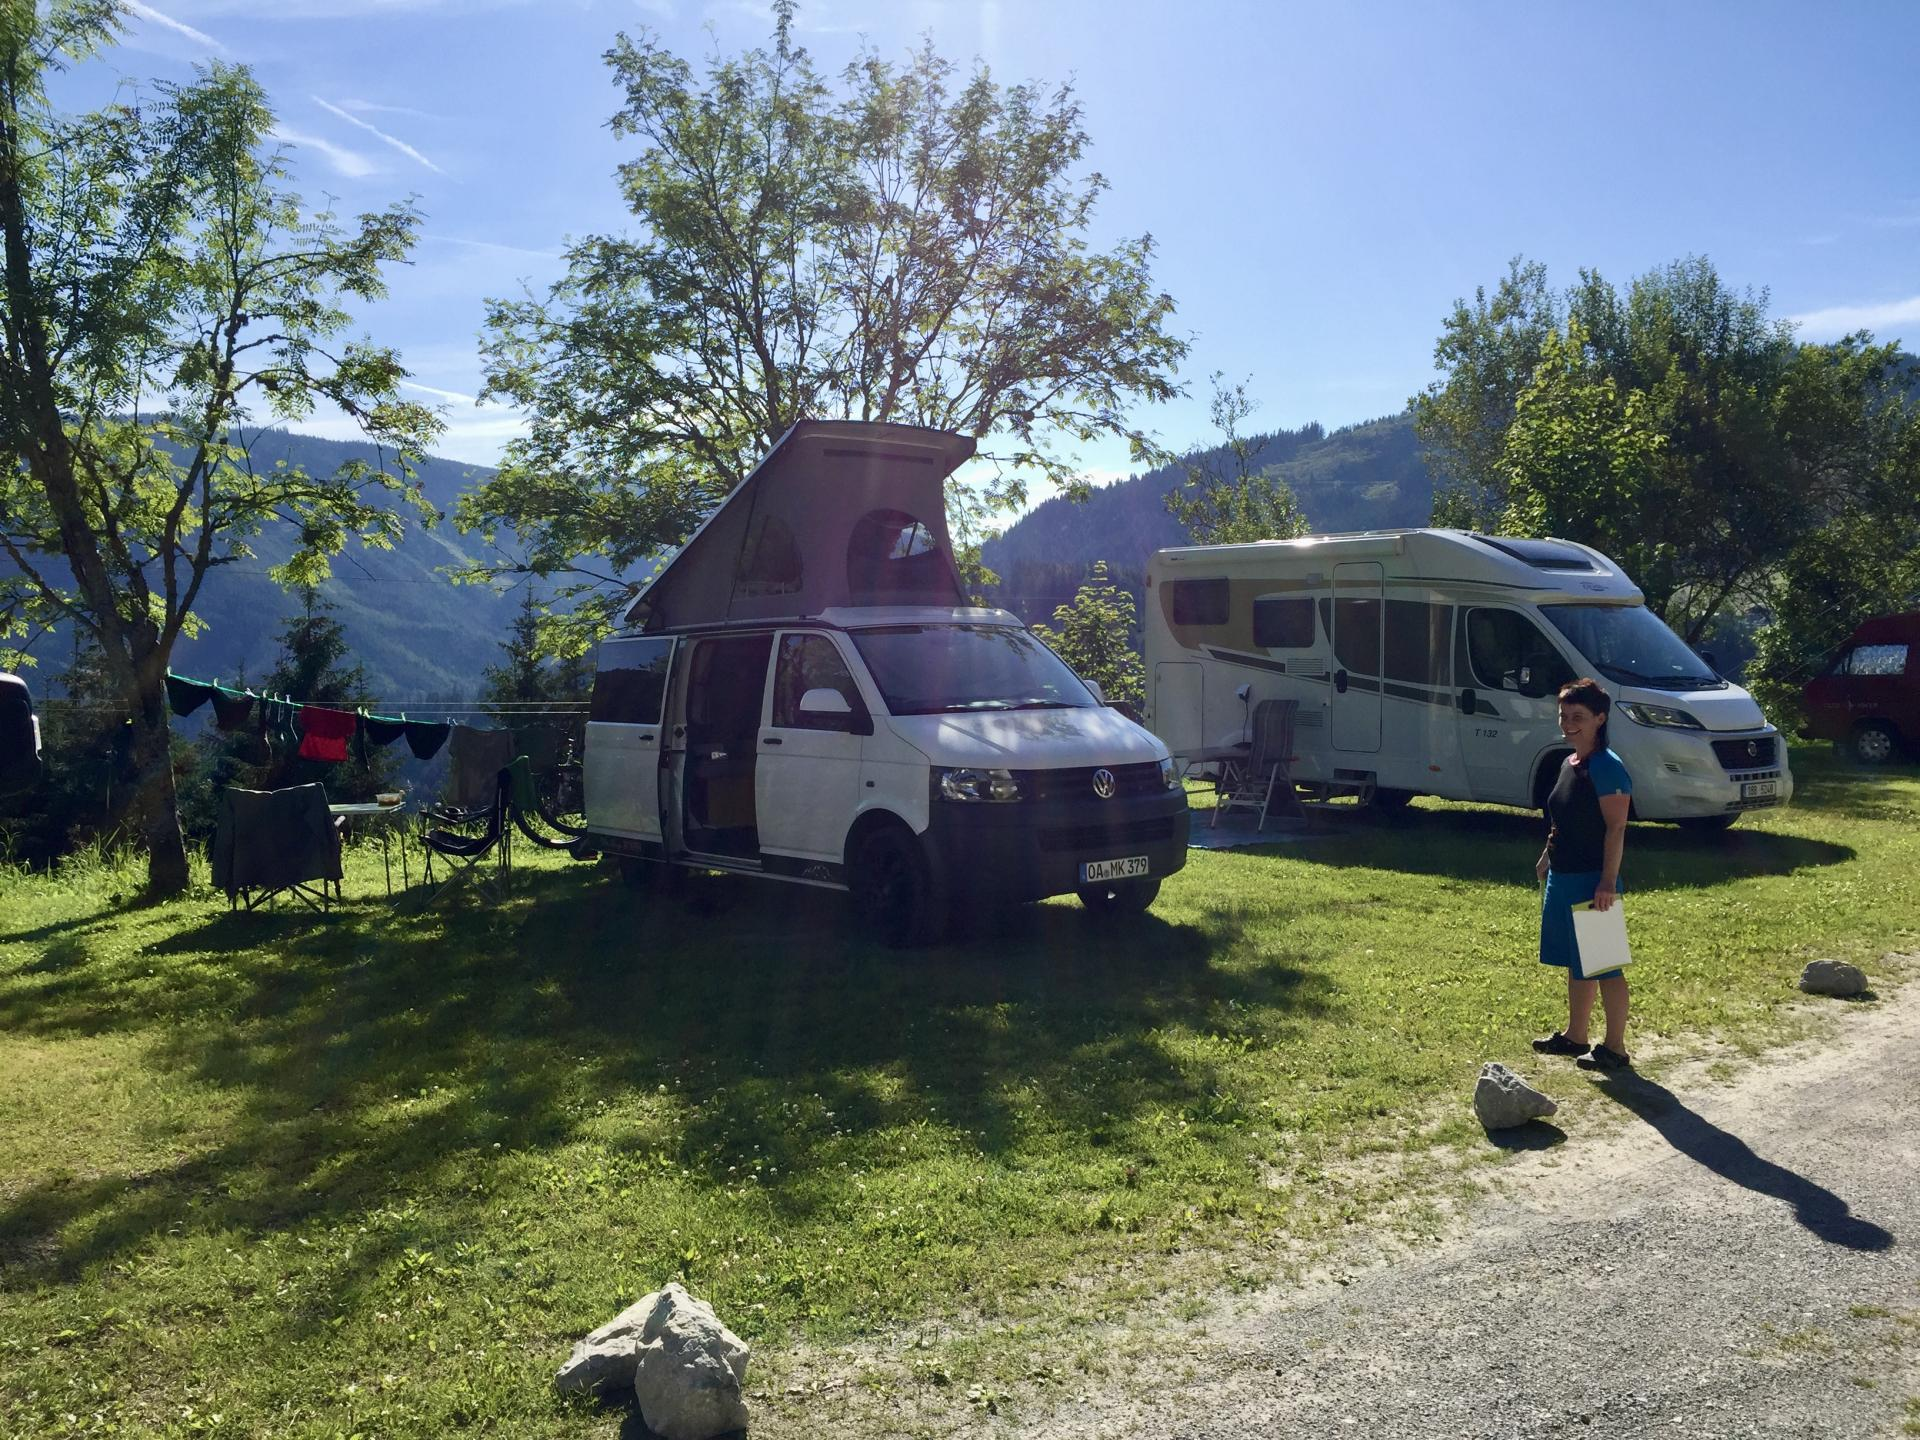 Camping Dachstein und Pension Gsenger #Camping